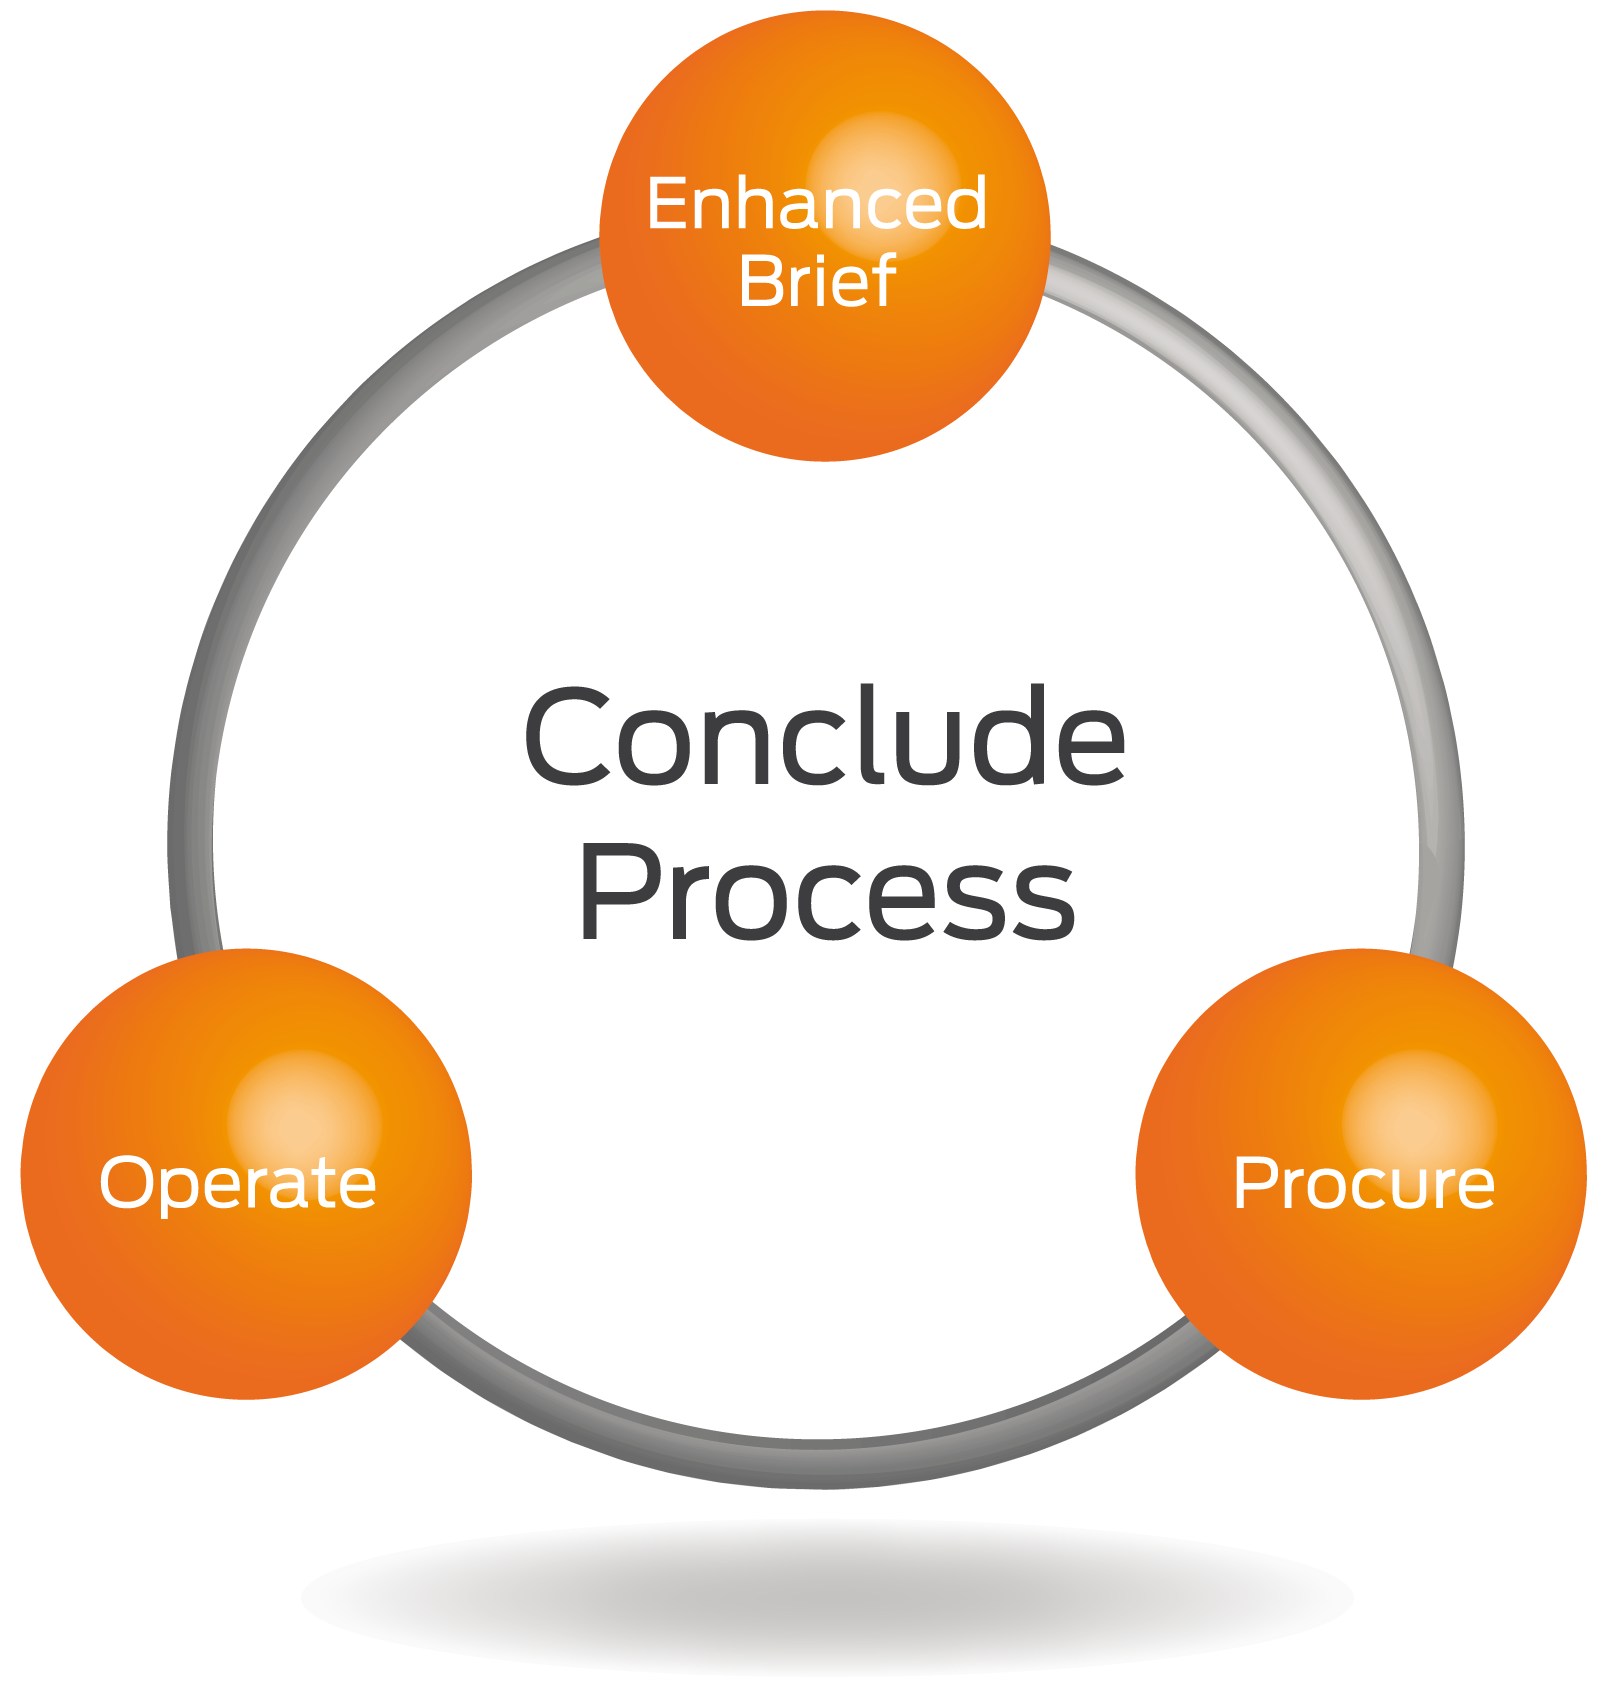 The conclude methodology contains three primary components